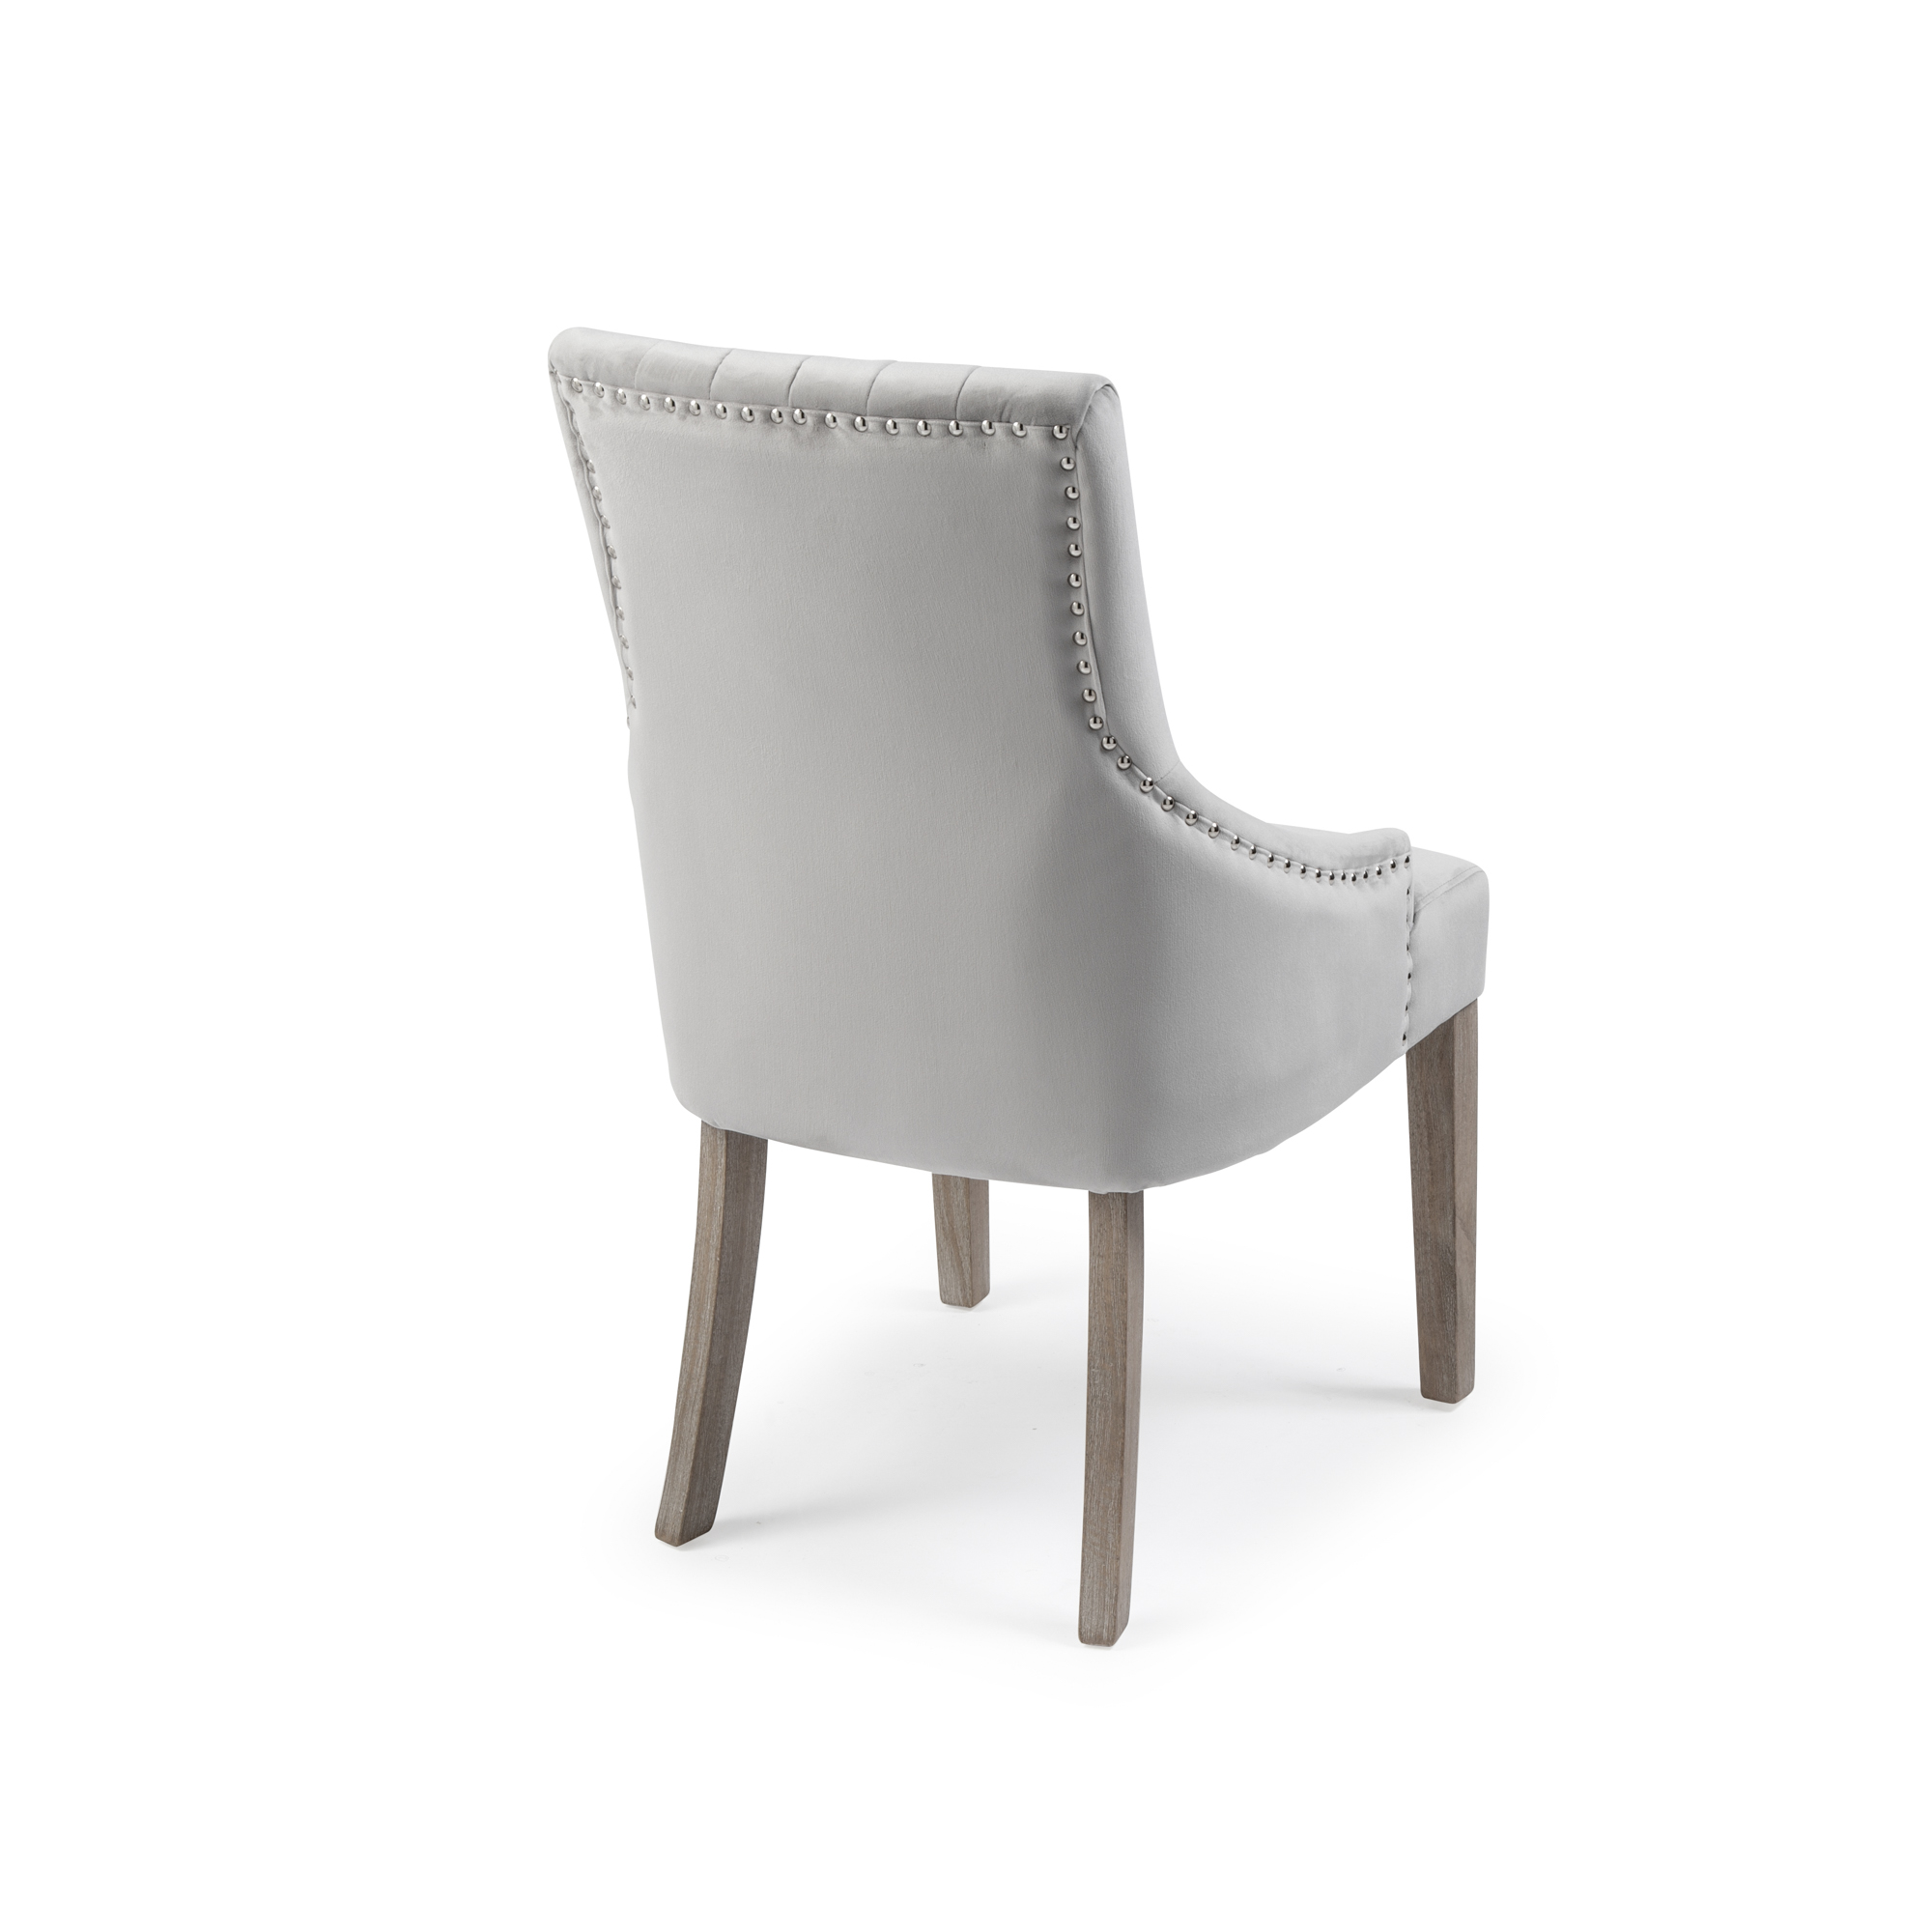 Chelsea Dove Grey Brushed Velvet Upholstered Scoop Dining Chair – White Washed Legs